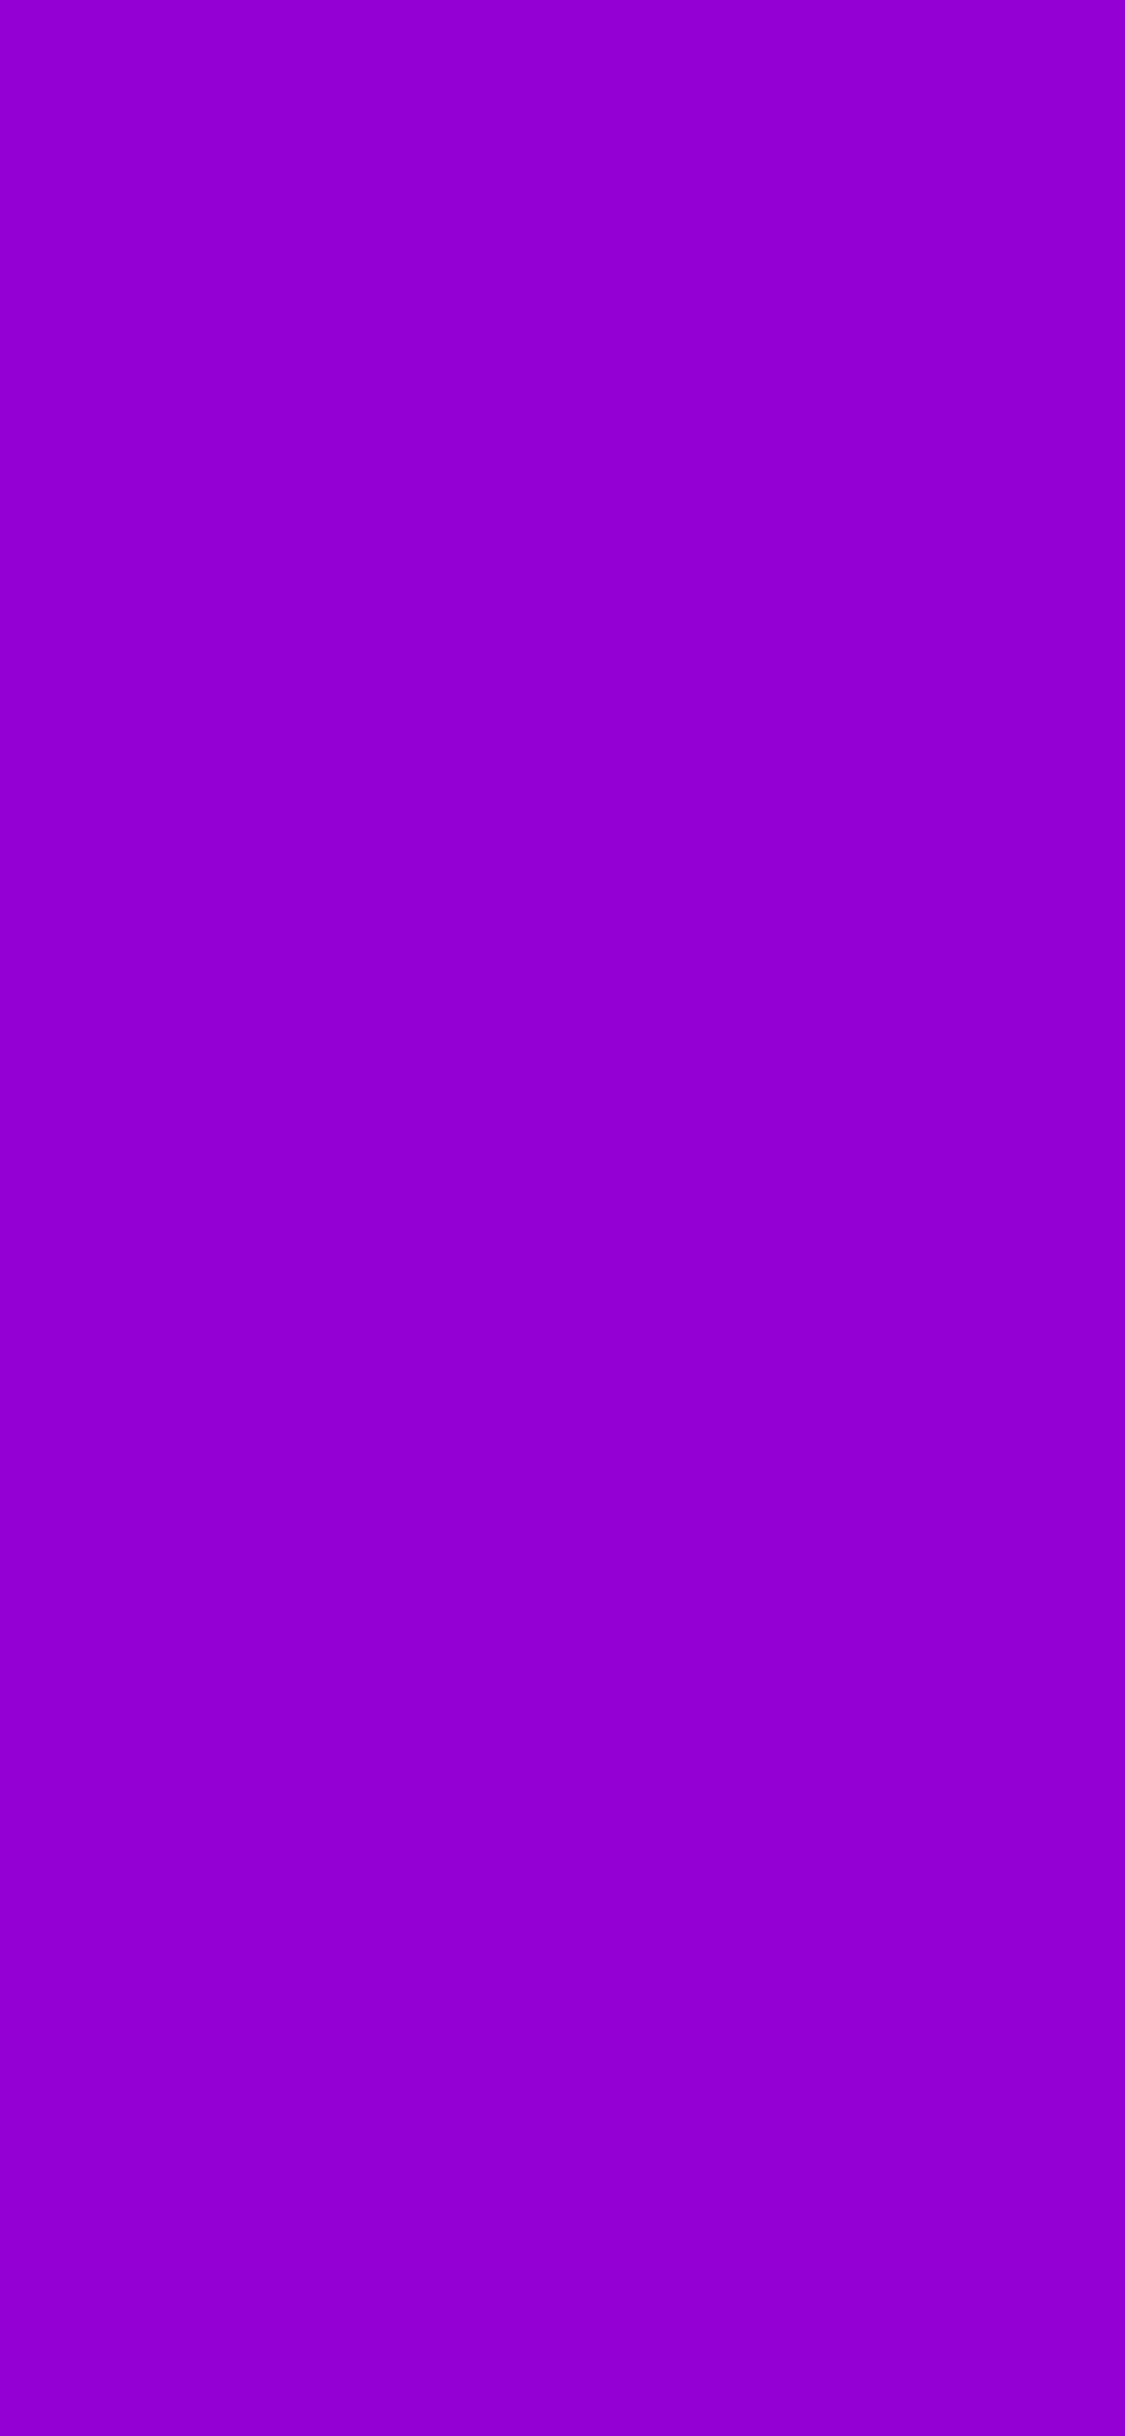 1125x2436 Dark Violet Solid Color Background